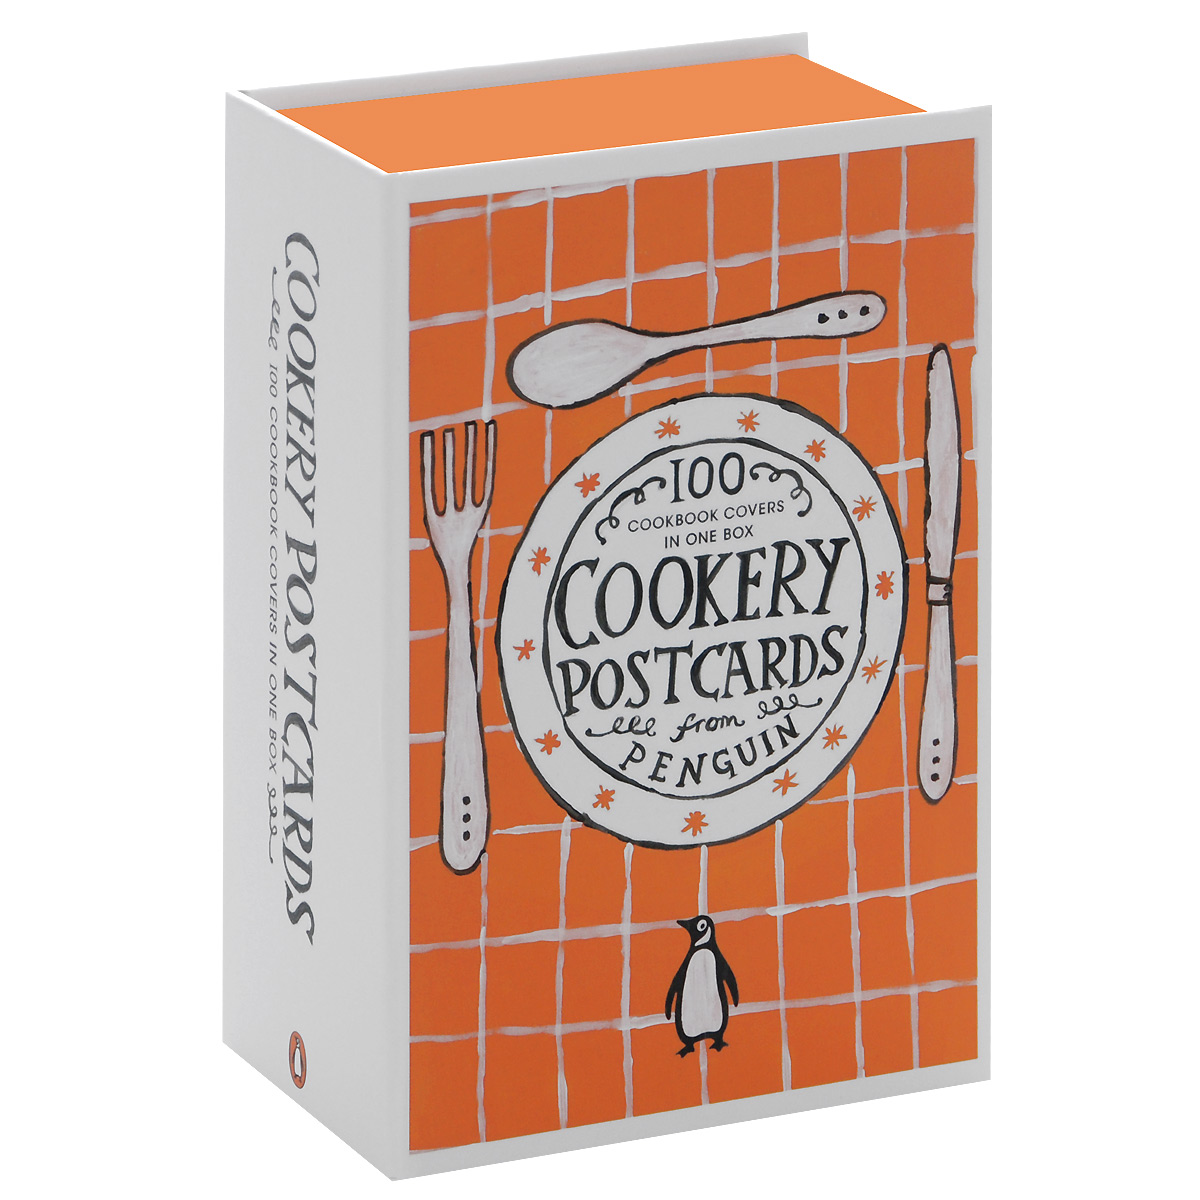 Cookery Postcards: 100 Cookbook Covers in One Box world of warcraft volume 3